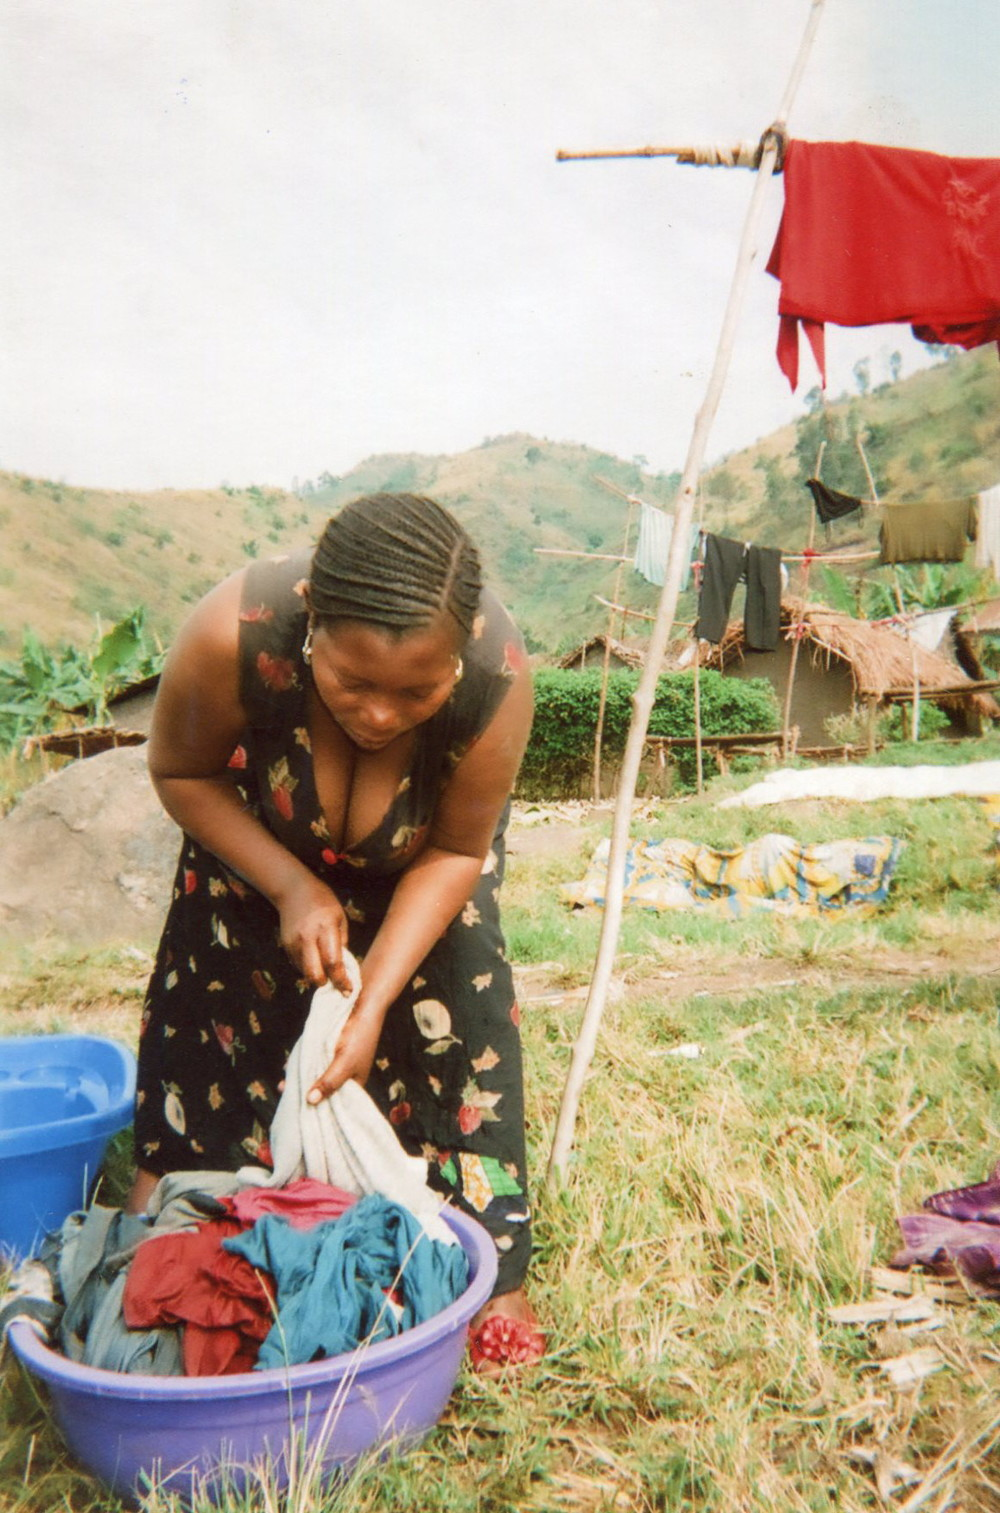 Here I am washing their clothes and they would make me do it quickly beating me with a stick.